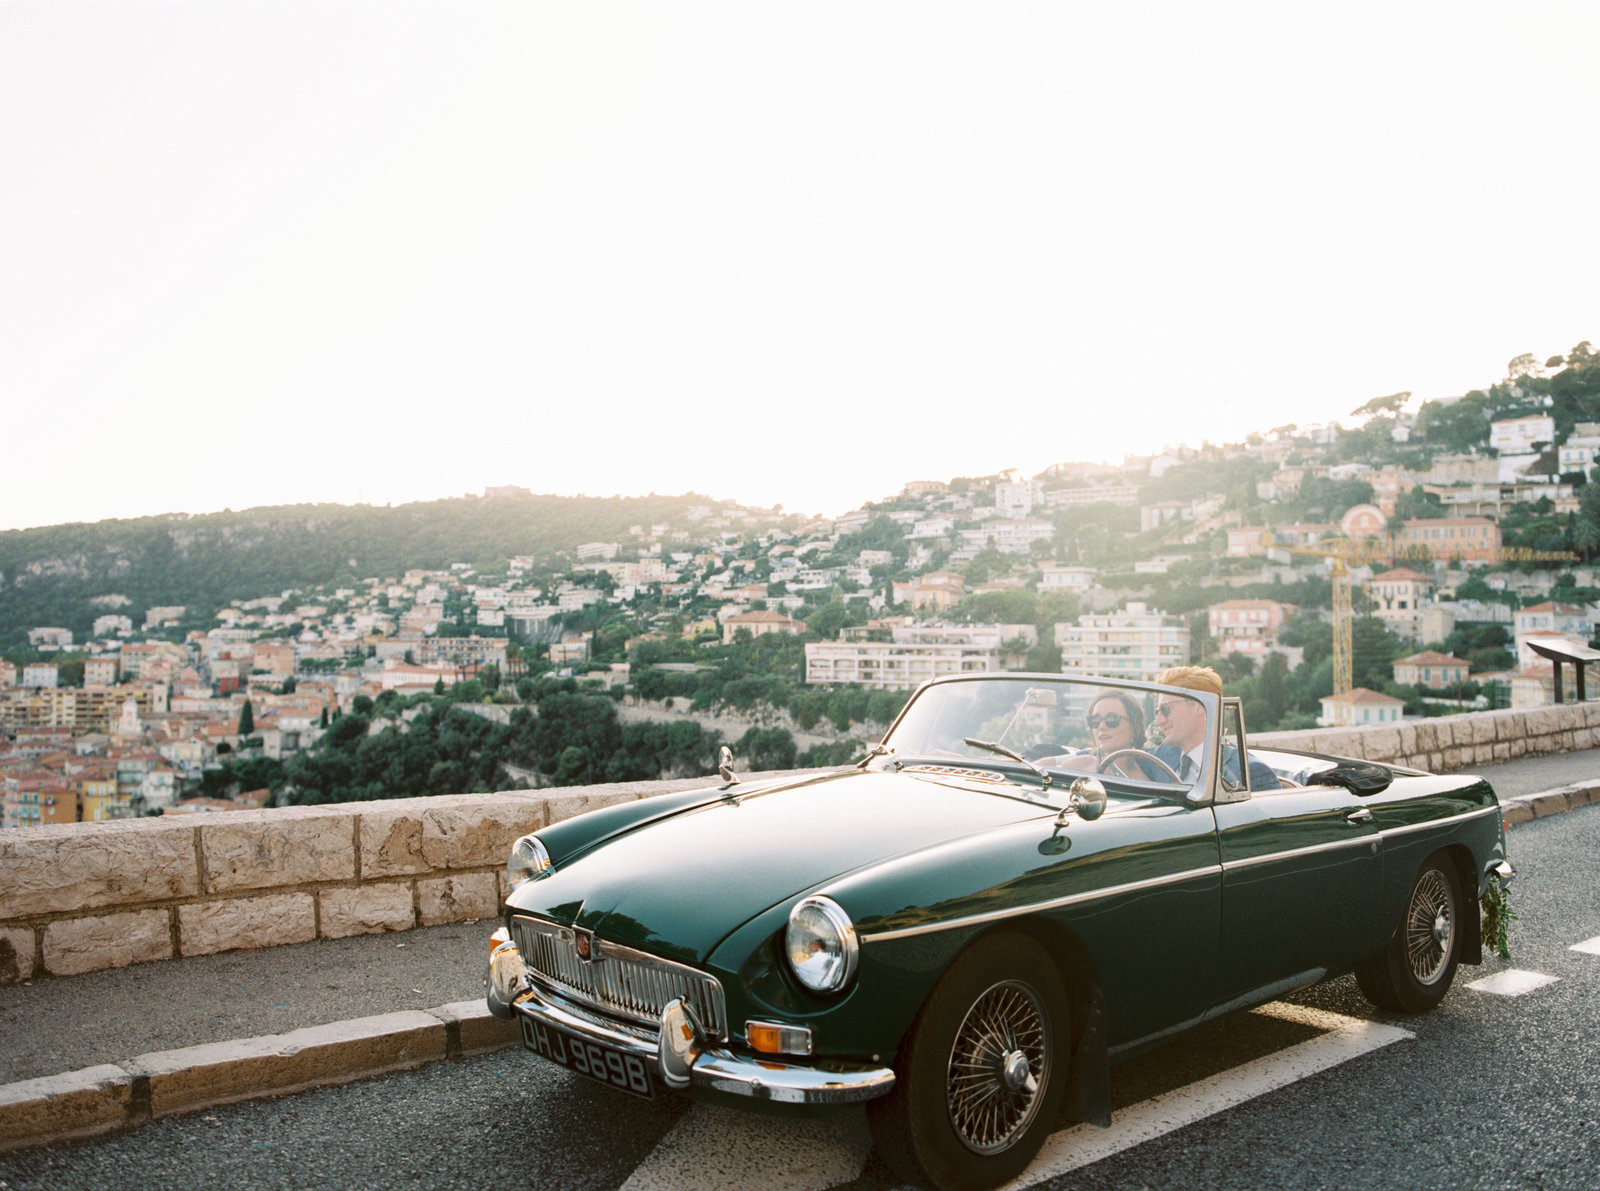 A photo of one of the cars available for Films, Photography and Commercial use at Provence Classics, who offer Classic Car Rental in the south of France.